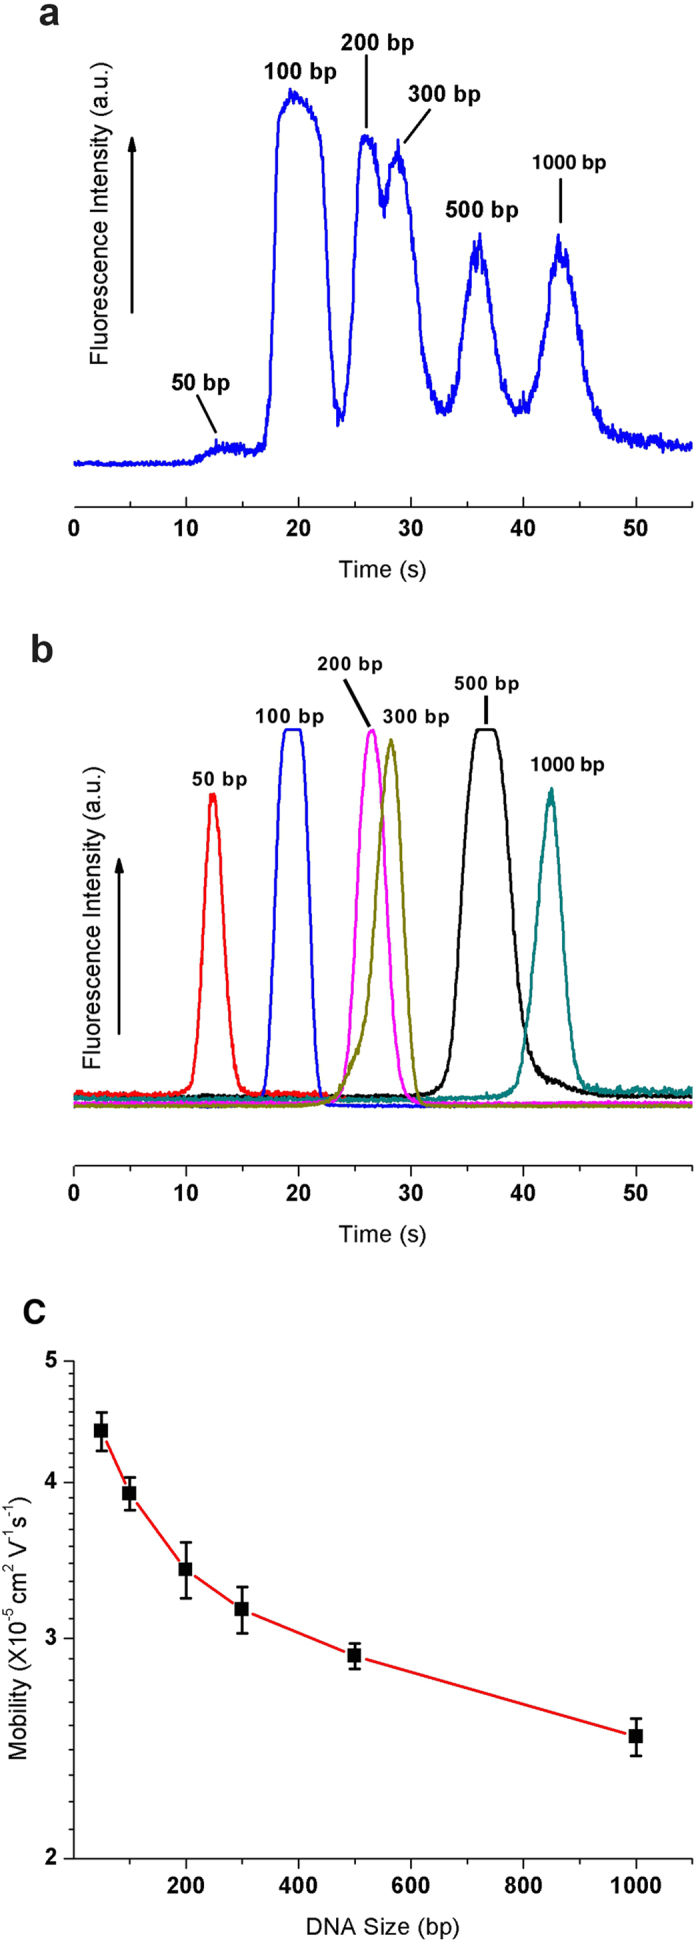 Separation and mobility of DNA molecules in the 3D nanowire structures. ( a ) Separation of 50 bp (40 ng/μL), 100 bp (30 ng/μL), 200 bp (30 ng/μL), 300 bp (30 ng/μL), 500 bp (30 ng/μL) and 1000 bp (30 ng/μL) molecules in the 3D nanowire structures. The electropherograms were obtained at 500 μm from the entrance of the 3D nanowire structures. The applied electric field in the separation channel was 100 V/cm. ( b ) The electropherogram of each type of DNA molecule to verify the migration time of each separation peak ( E = 100 V/cm, L = 500 μm). ( c ) Semi-log plot of electrophoretic mobility as a function of DNA size under the applied electric field of 100V/cm.